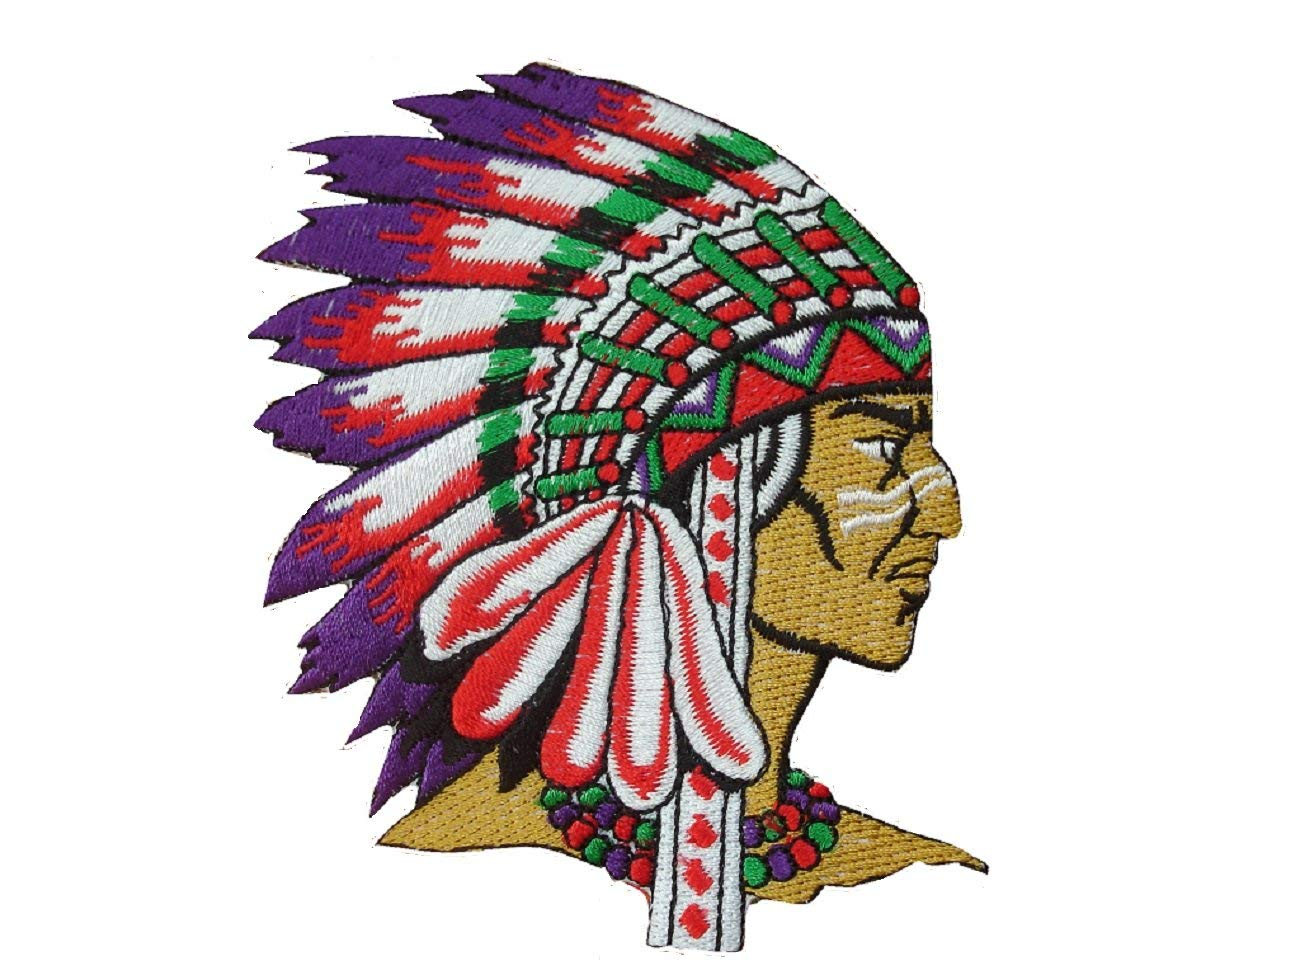 NATIVE AMERICAN Iron On Patch * Lot of 2 pieces * Applique Motif Red Indian Chief Biker Decal 3.8 x 3.4 inches (10 x 8.5 cm)